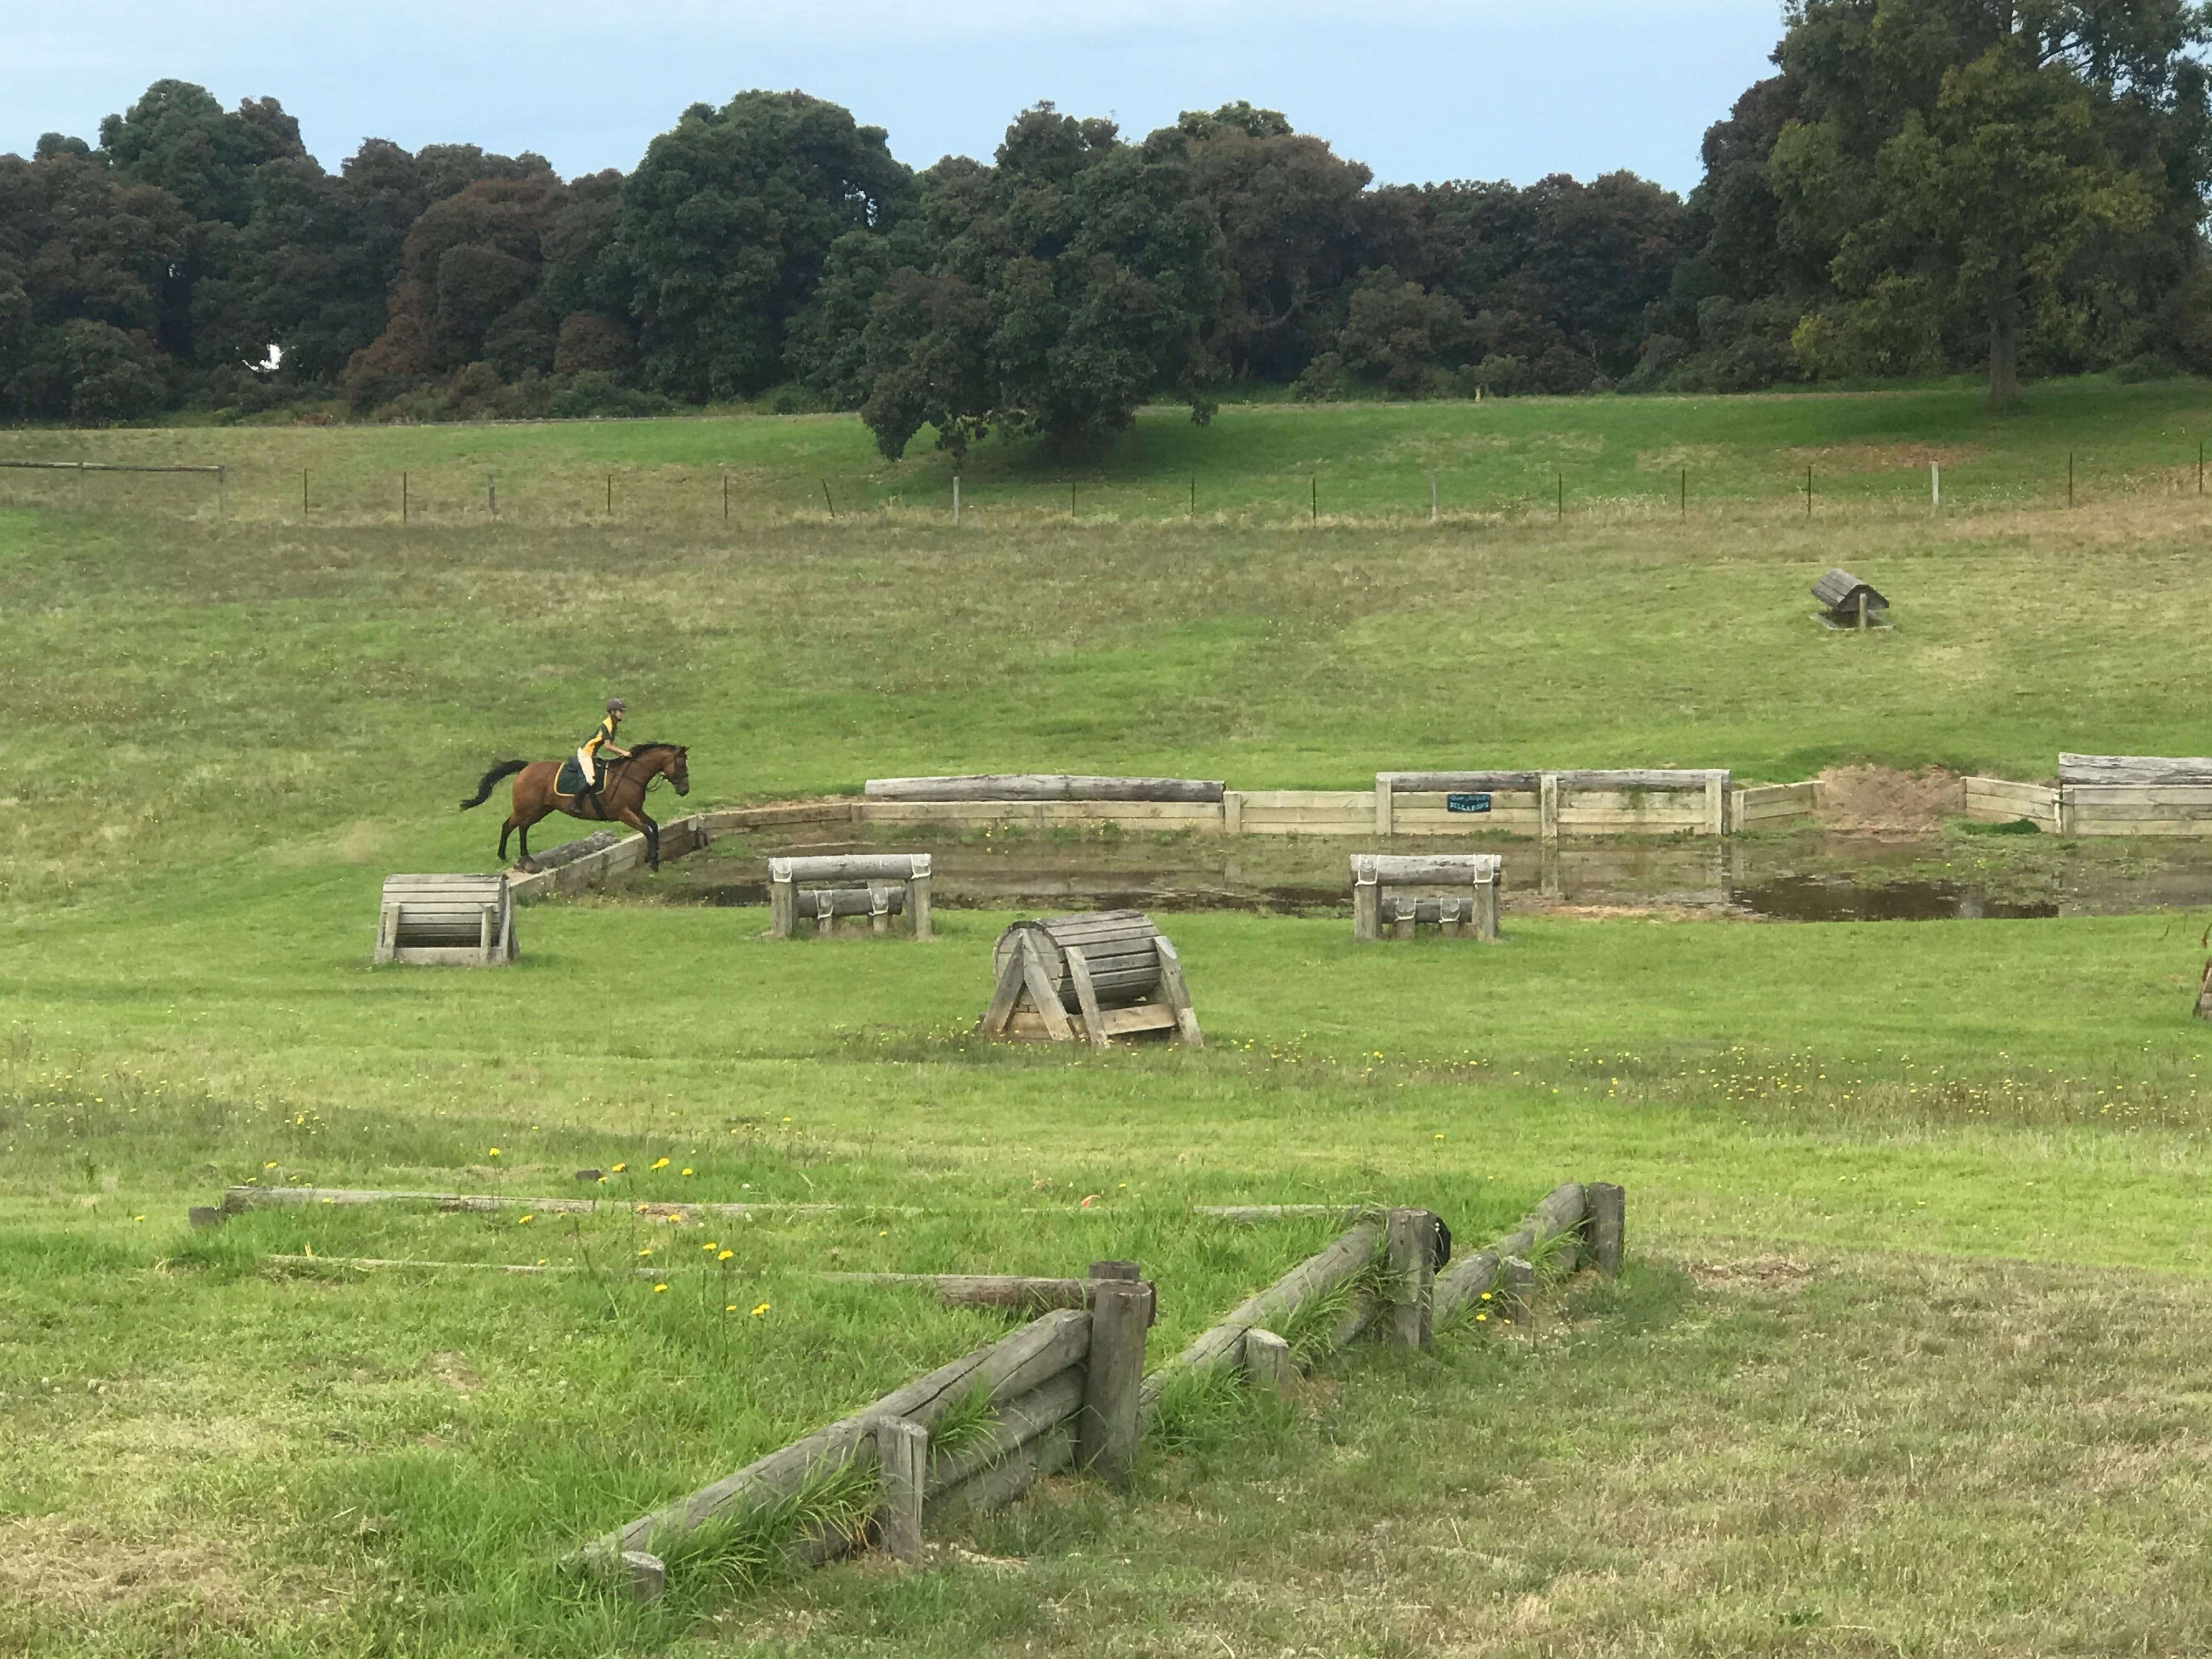 Mount Gambier and District Pony Club Horse Trials 2020 - Accommodation Resorts